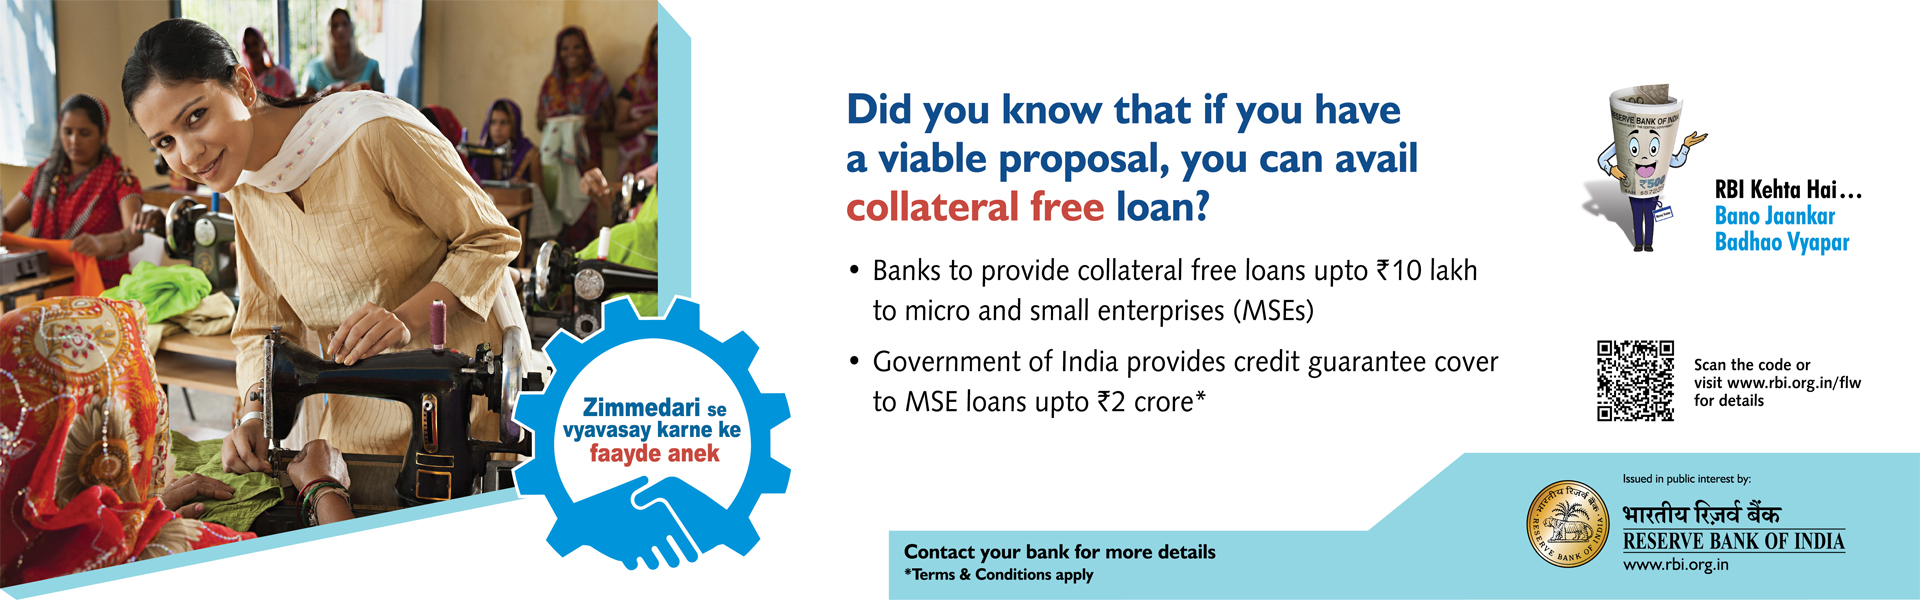 Free-Collateral-Loans-For-Small-Business-MSE-Loans